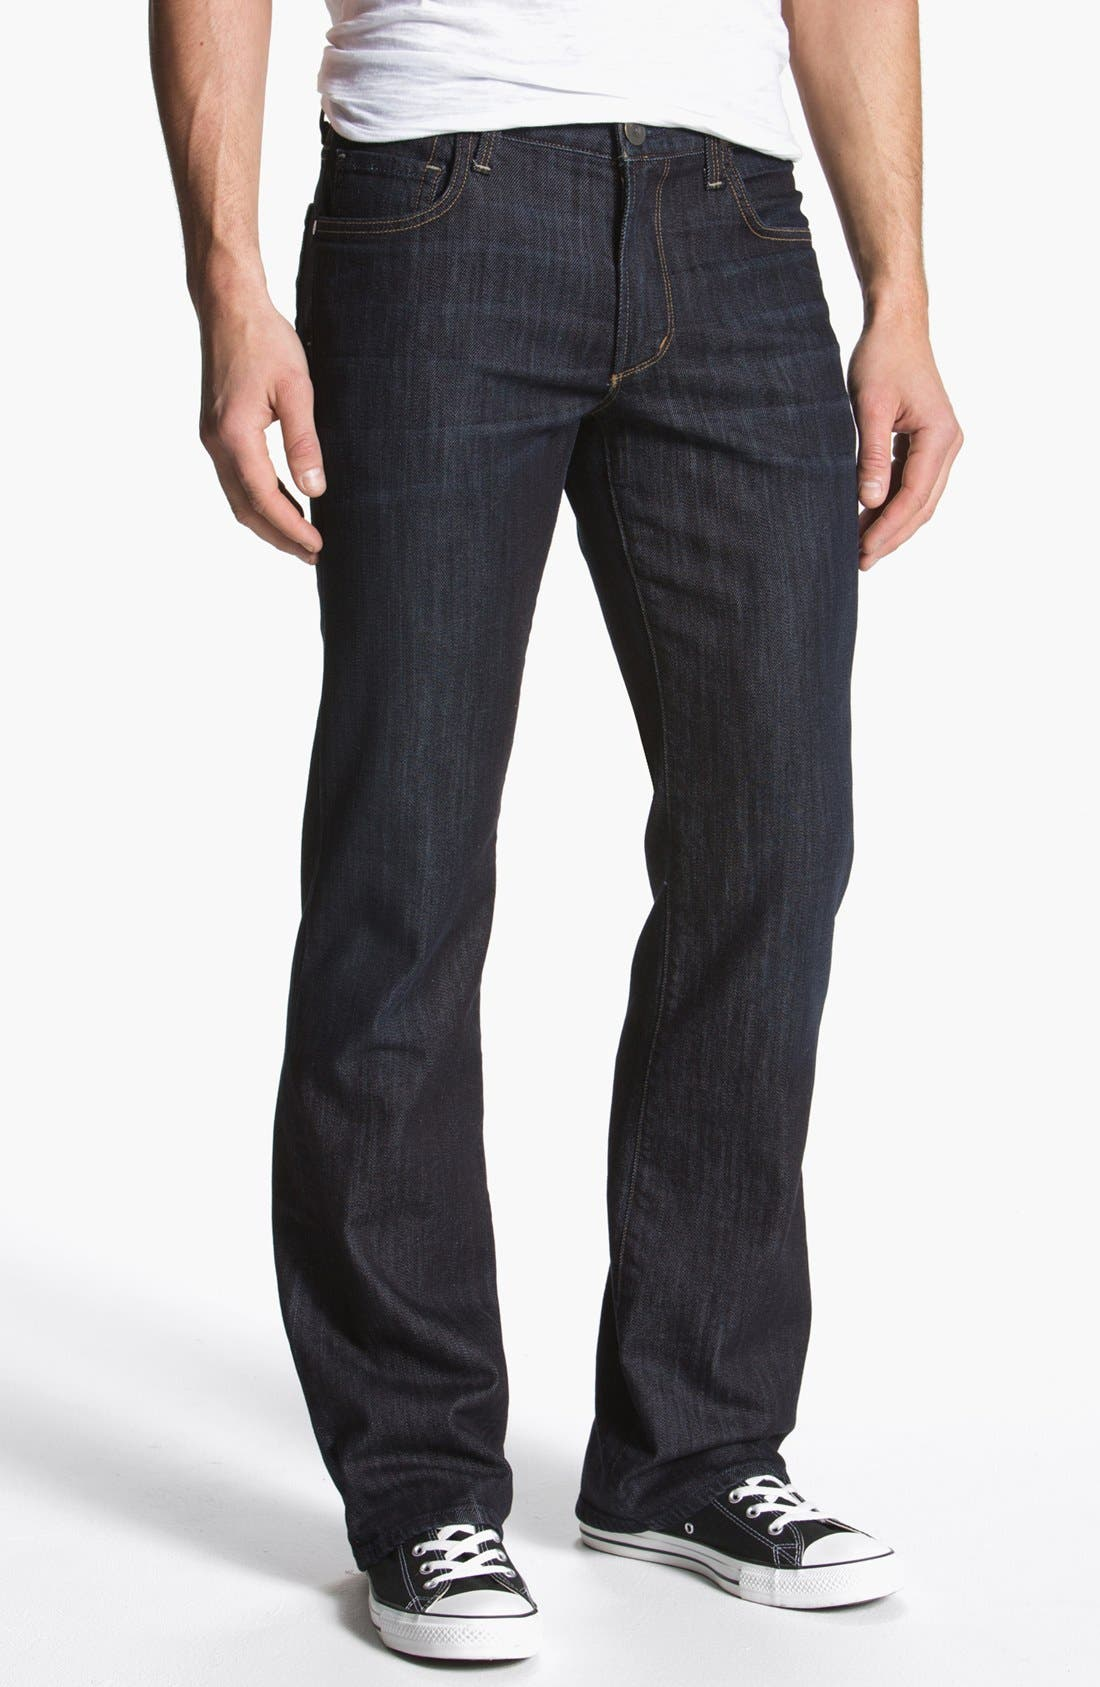 Alternate Image 1 Selected - Citizens of Humanity Bootcut Jeans (Big Sur)